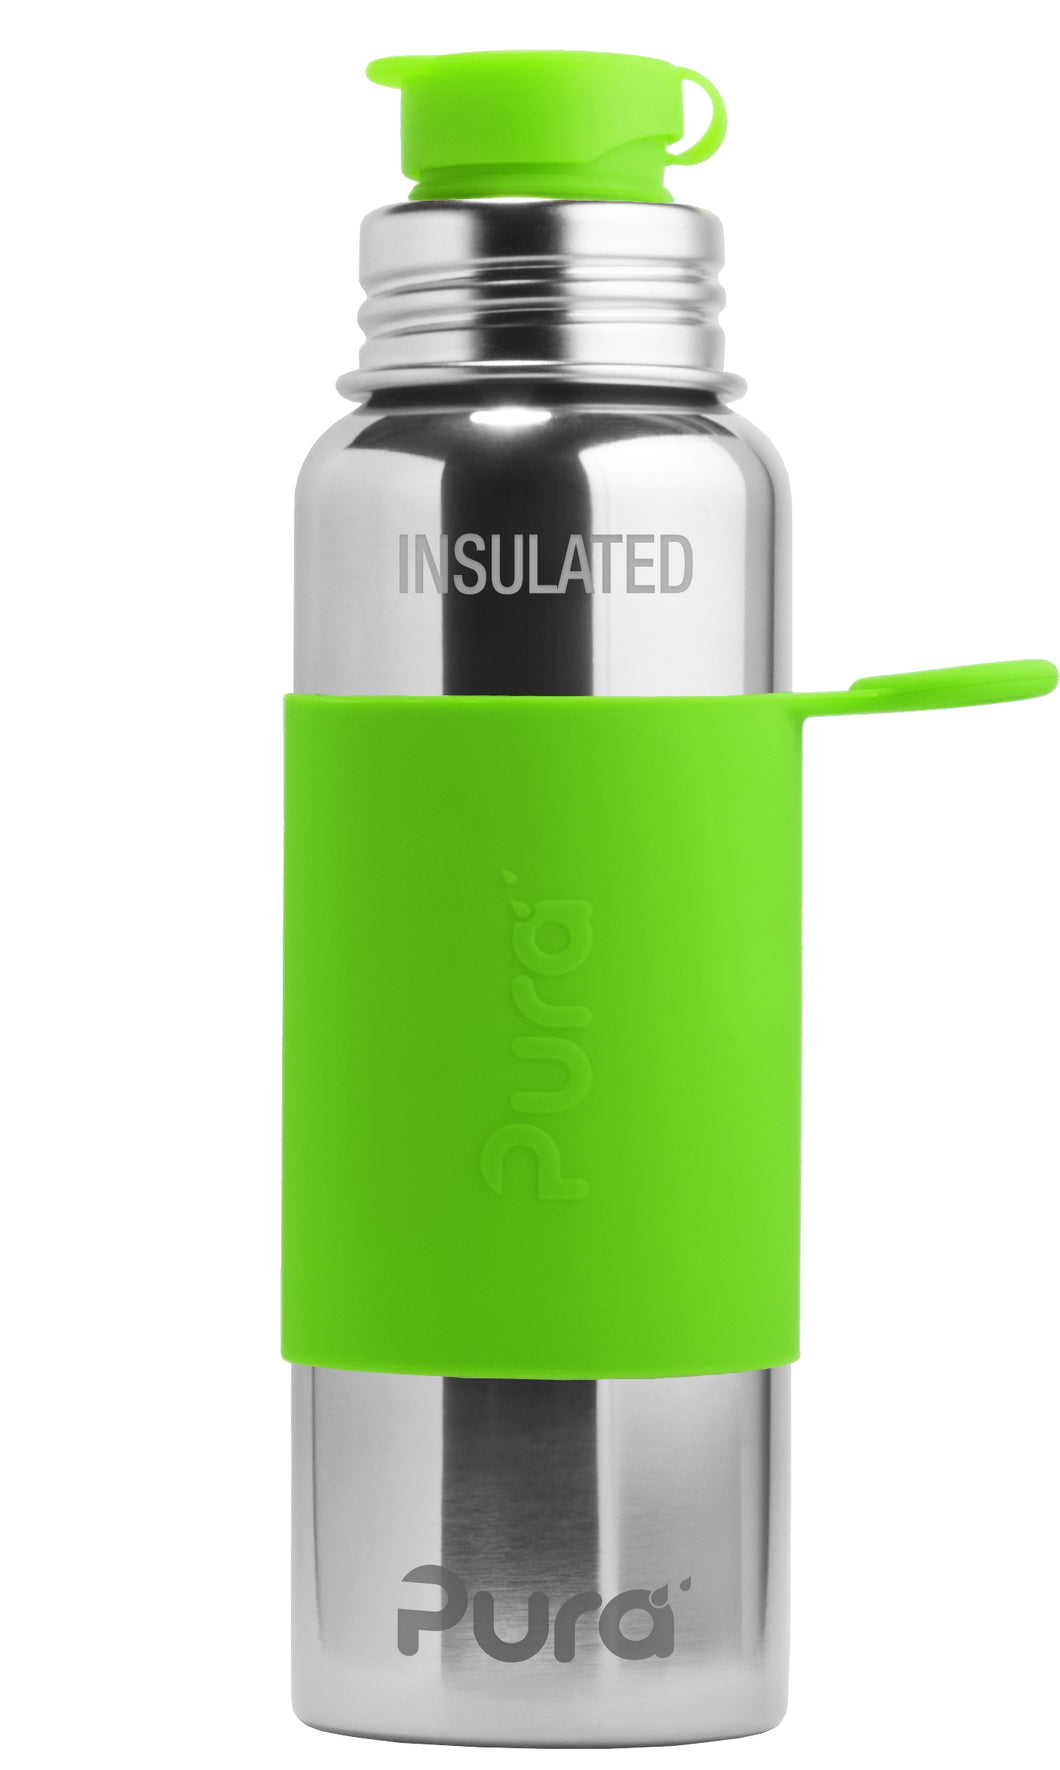 Pura Sport 650 Insulated Stainless Steel Bottle - Green